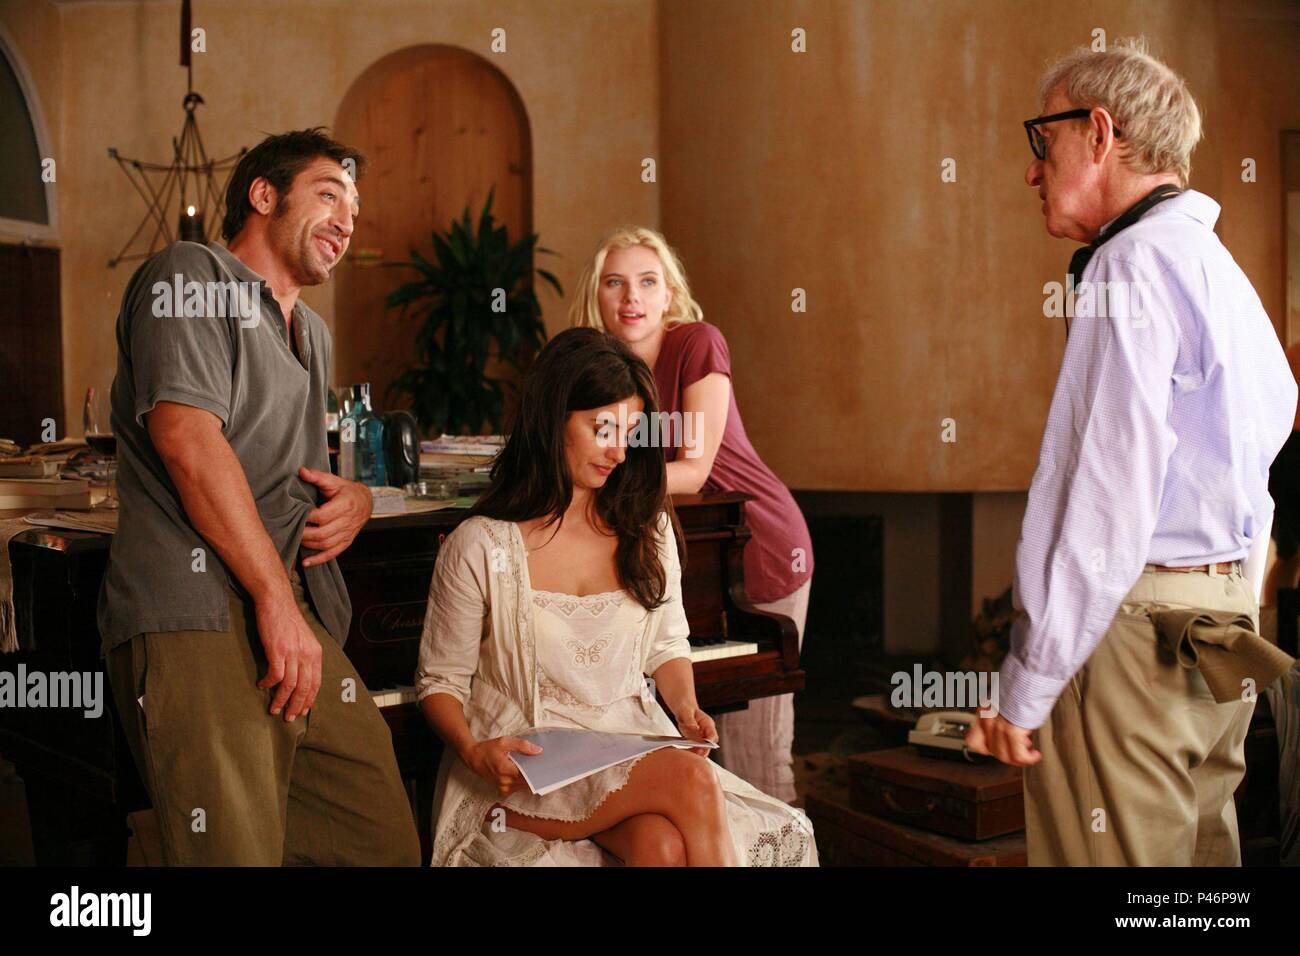 El Salon De Antena 3 Original Film Title Vicky Cristina Barcelona English Title